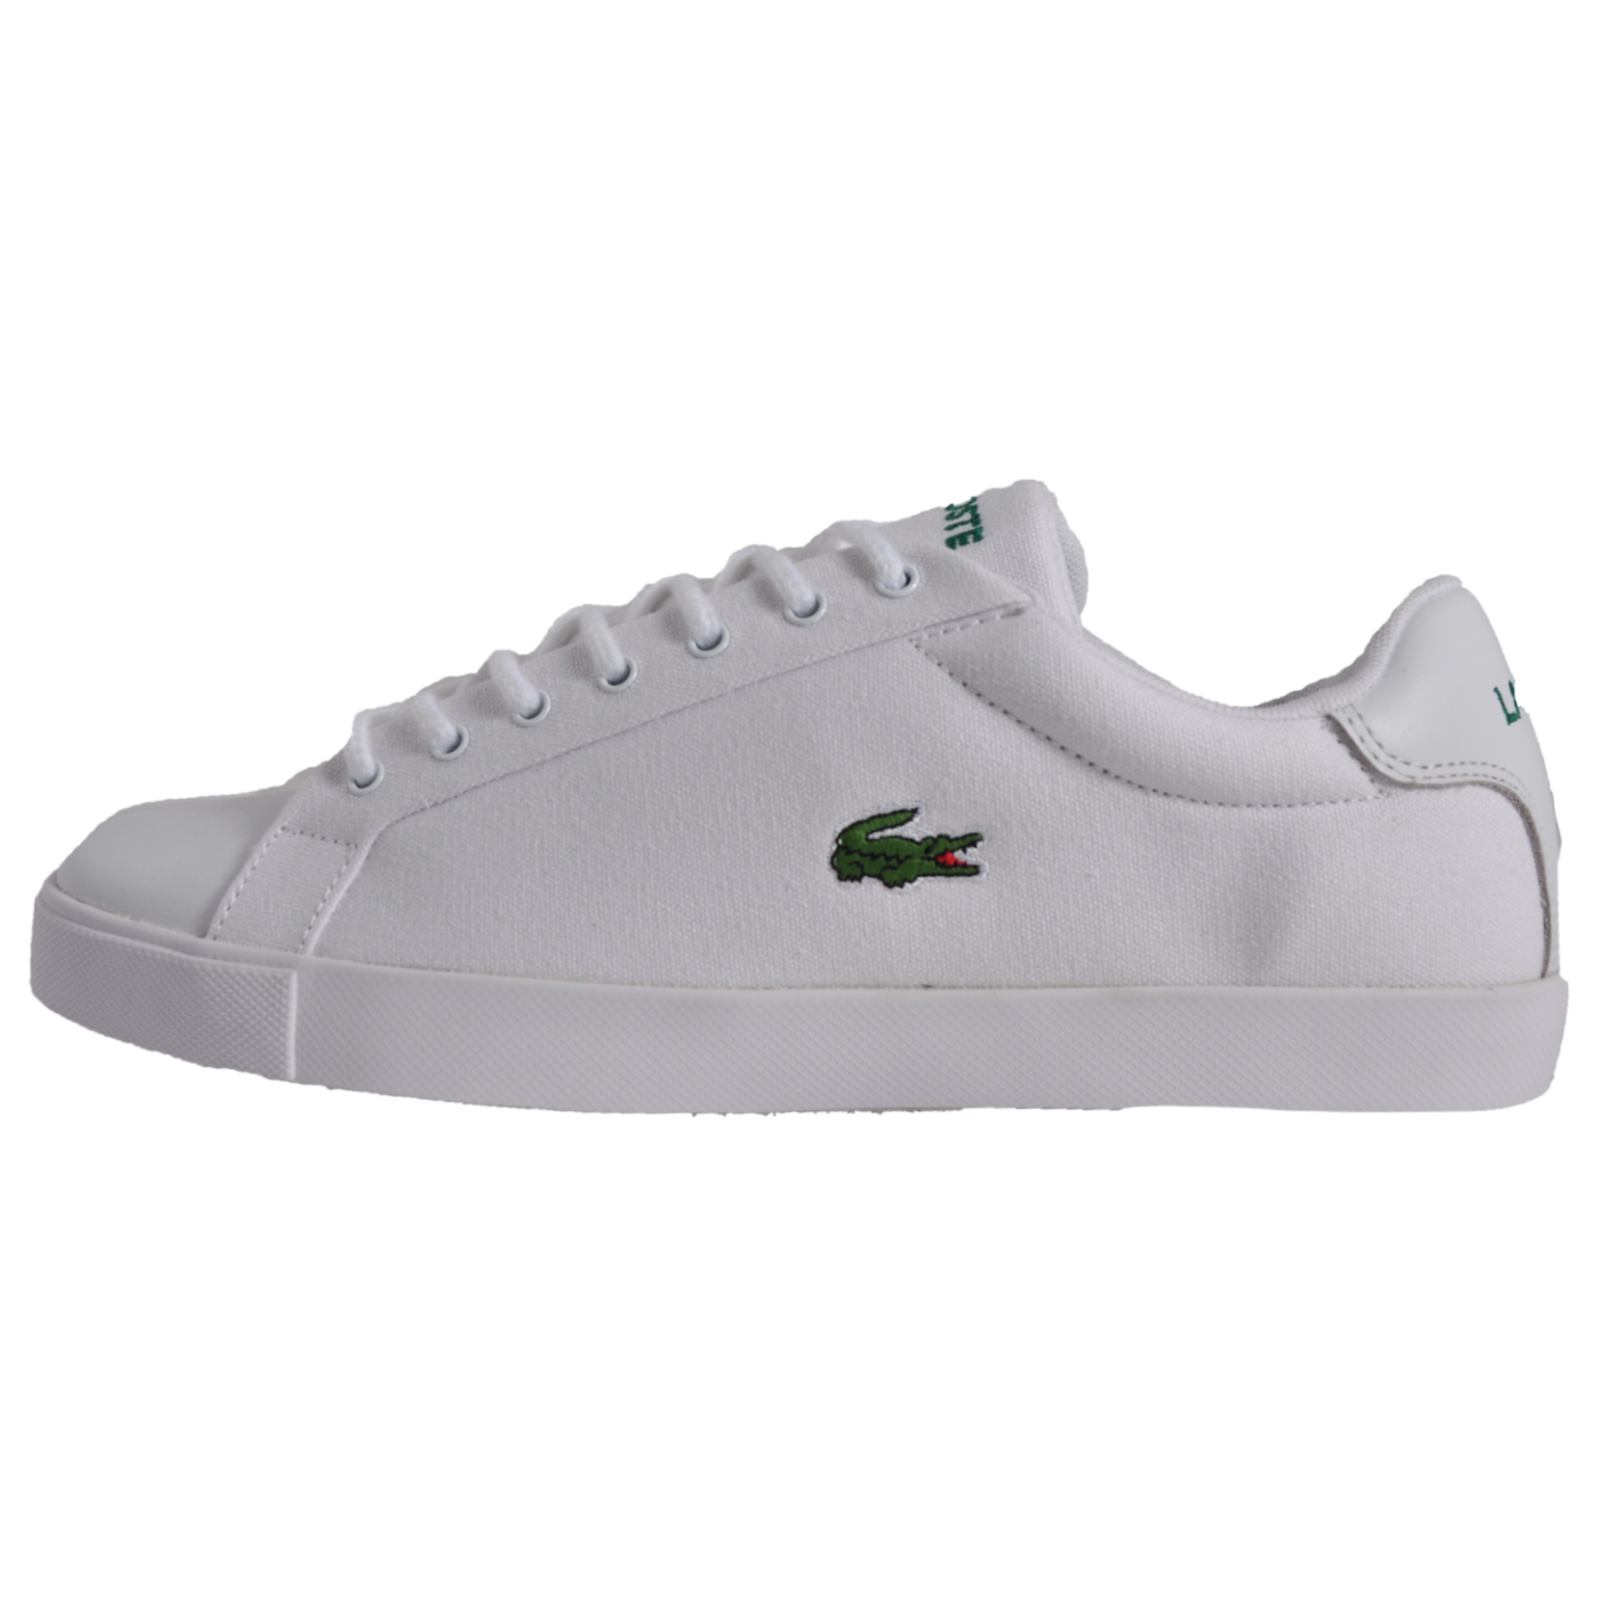 low price thoughts on available Details about Lacoste Grad Vulc Mens Classic Casual Designer Retro Trainers  White